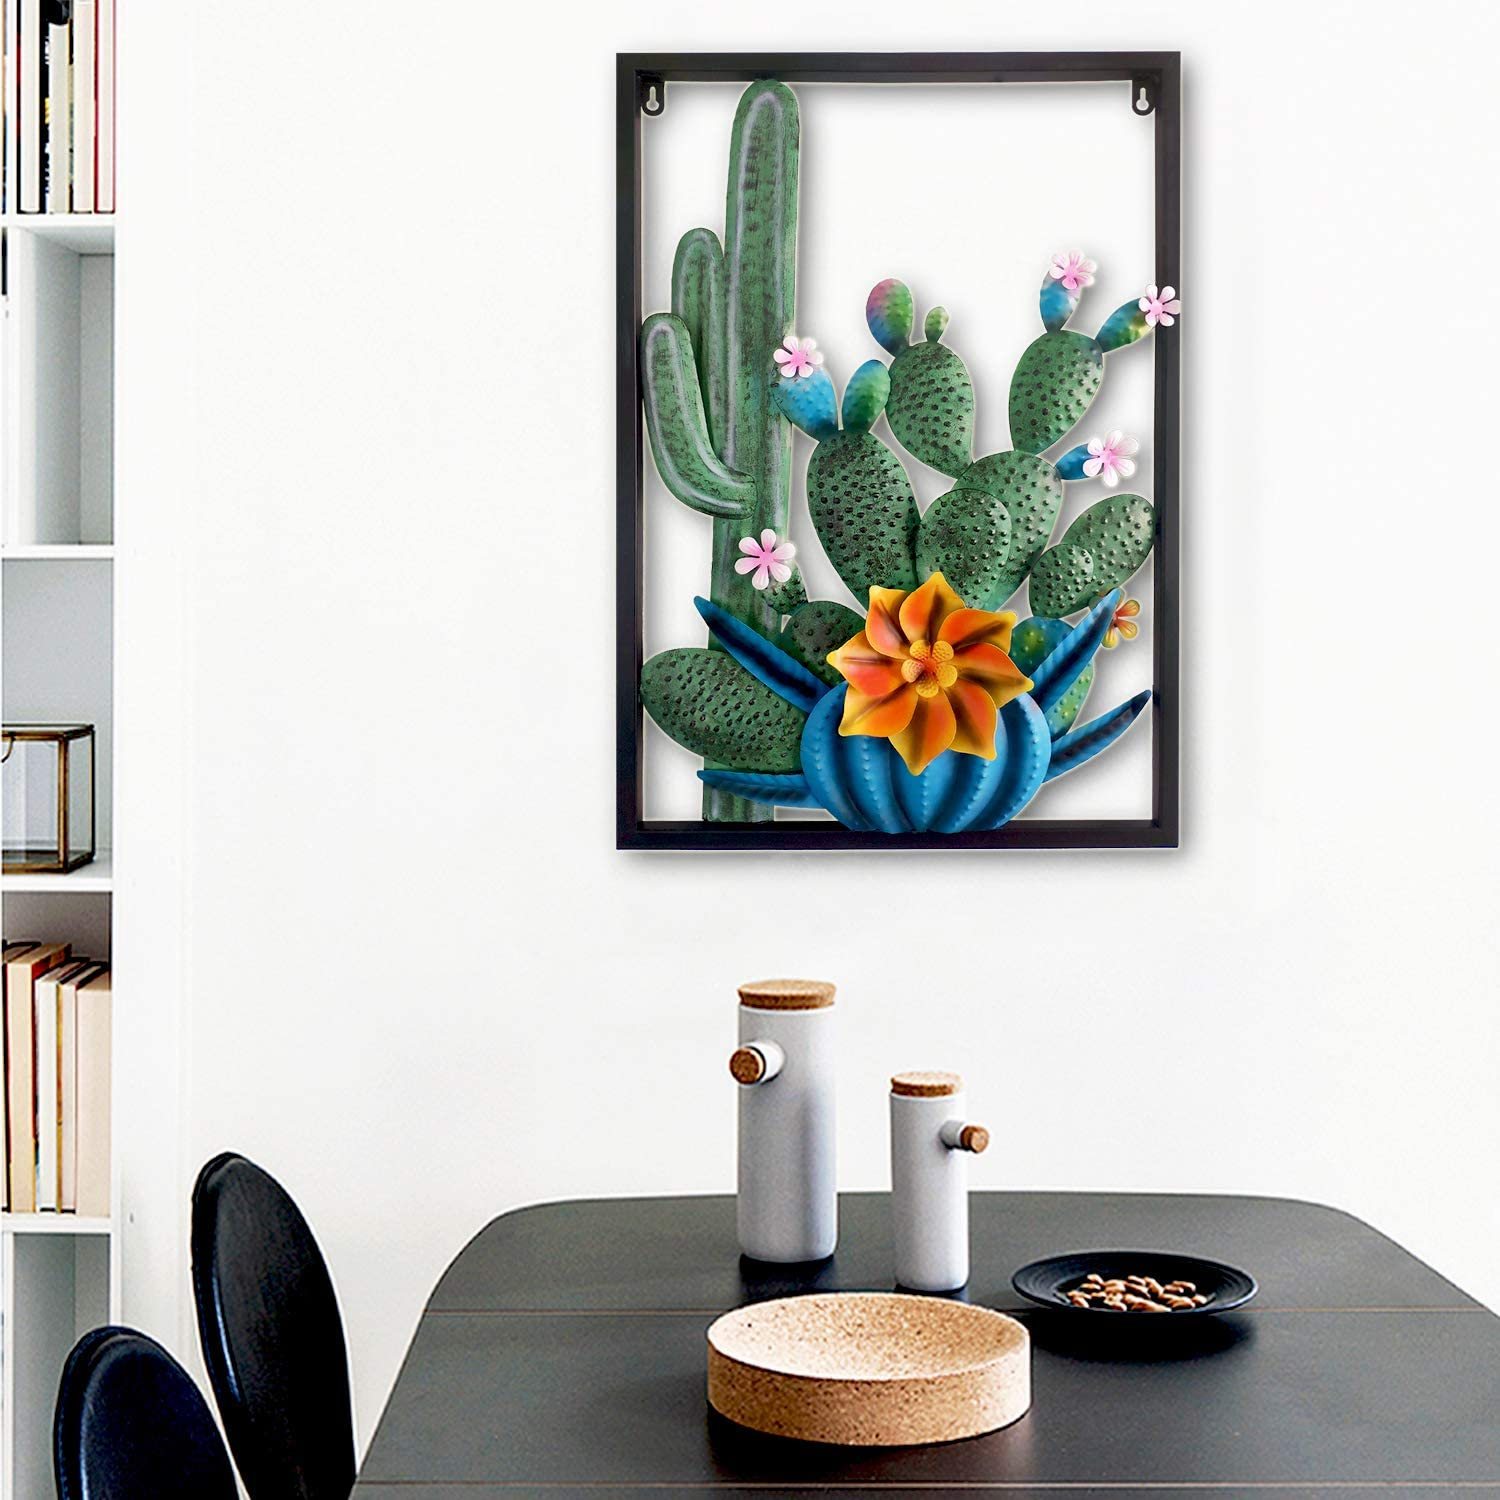 Metallic Iron Wall Art MagicPro Cactus Wall Decor Hand-Painted Large Metal Wall Mount for Indoor Decor